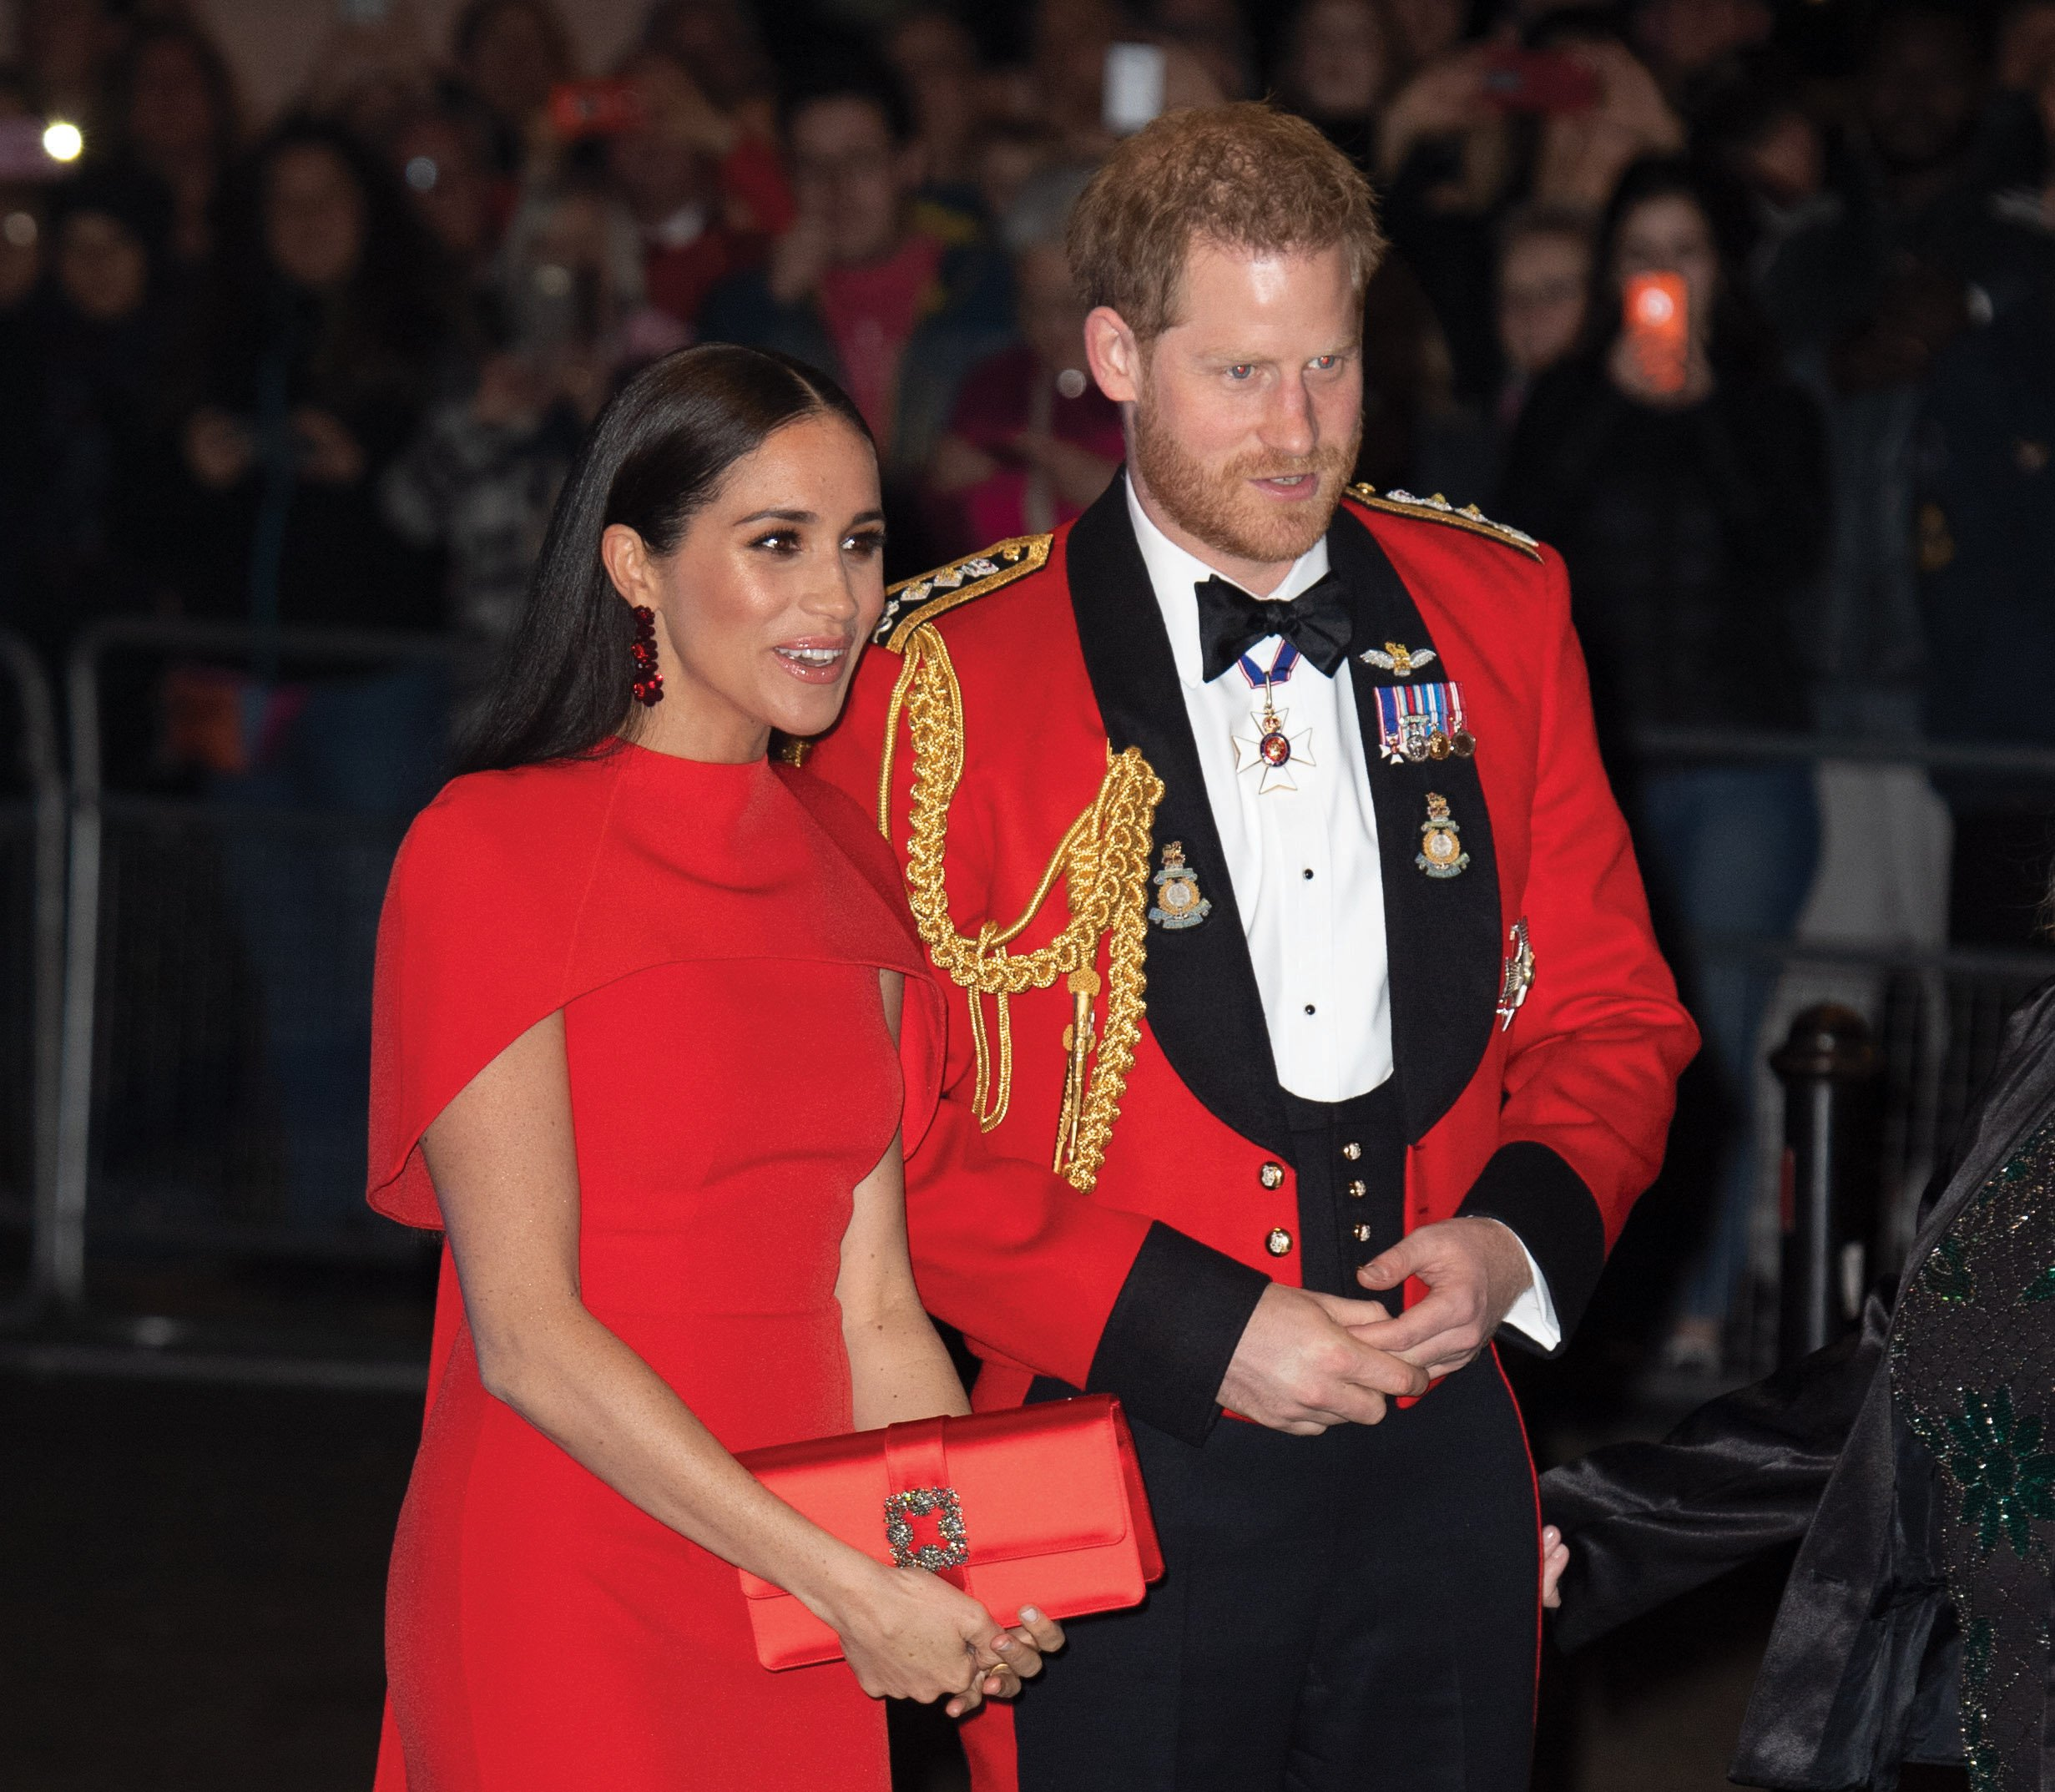 Harry and Meghan have swapped their royal roles for roles as producers (Credit: SplashNews)